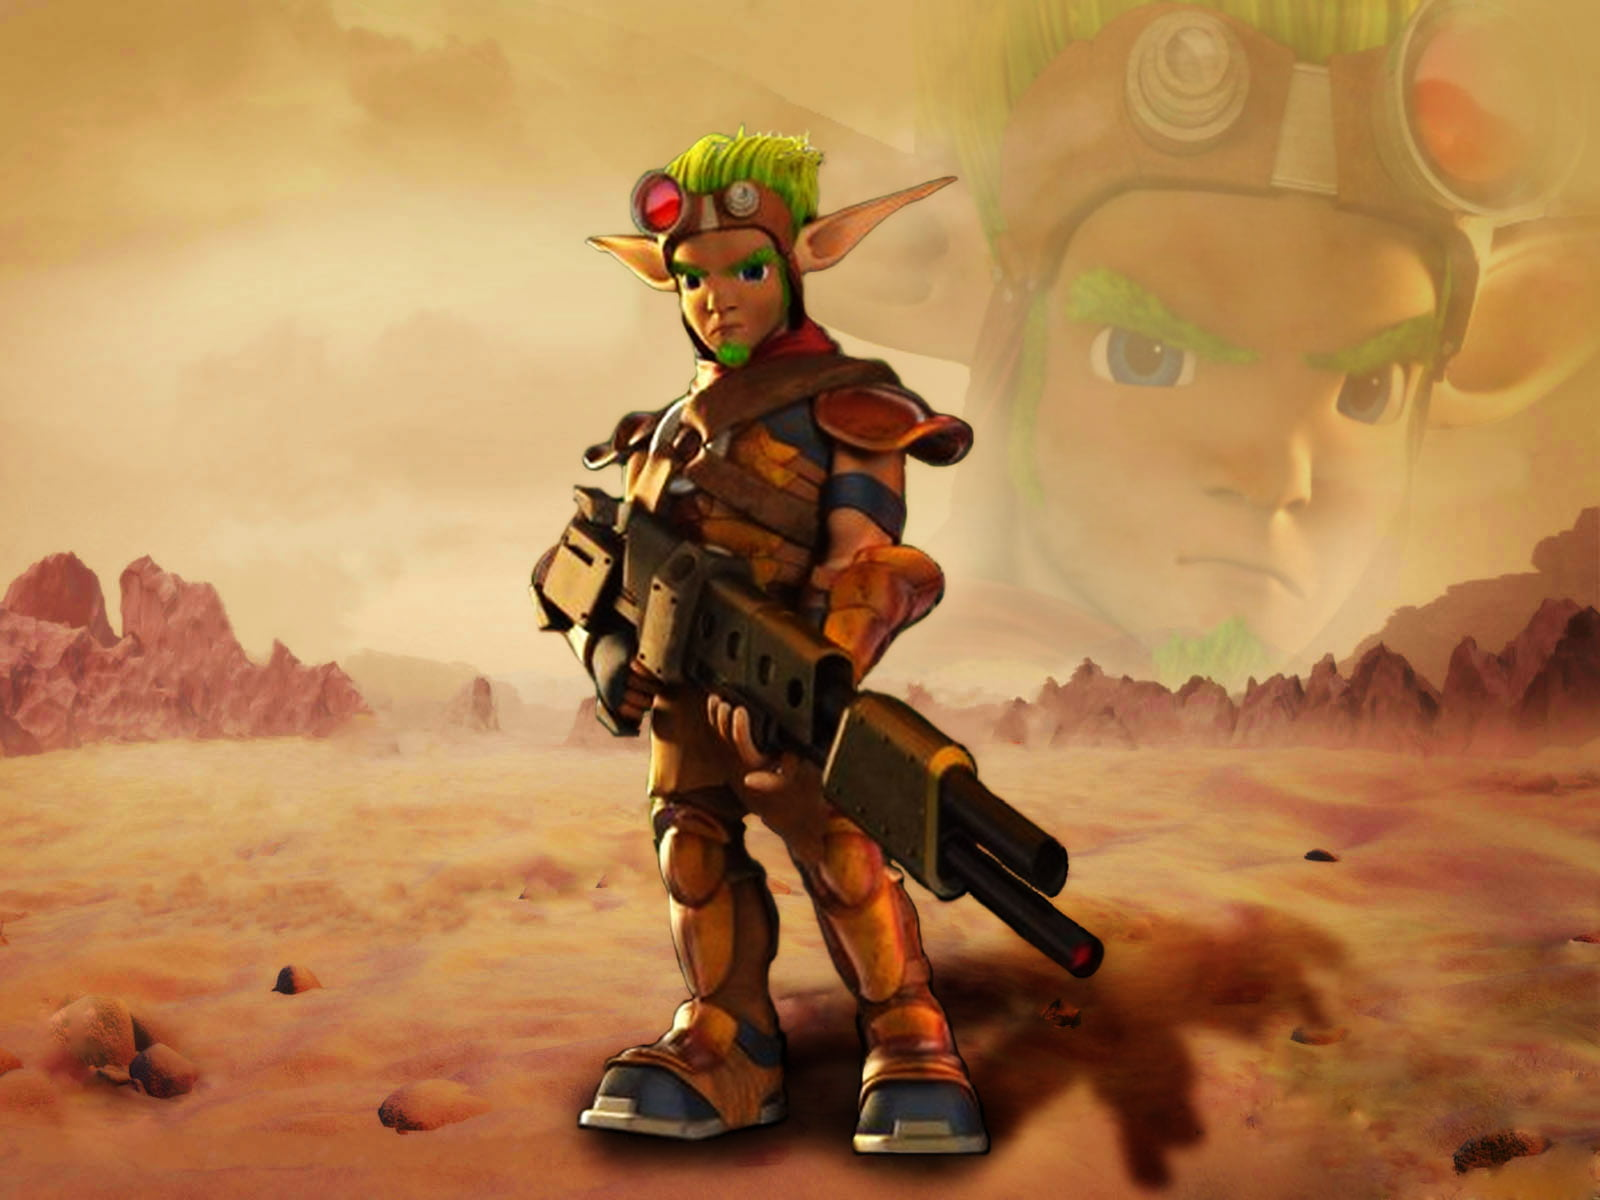 ratchet and clank ps3 wallpaper